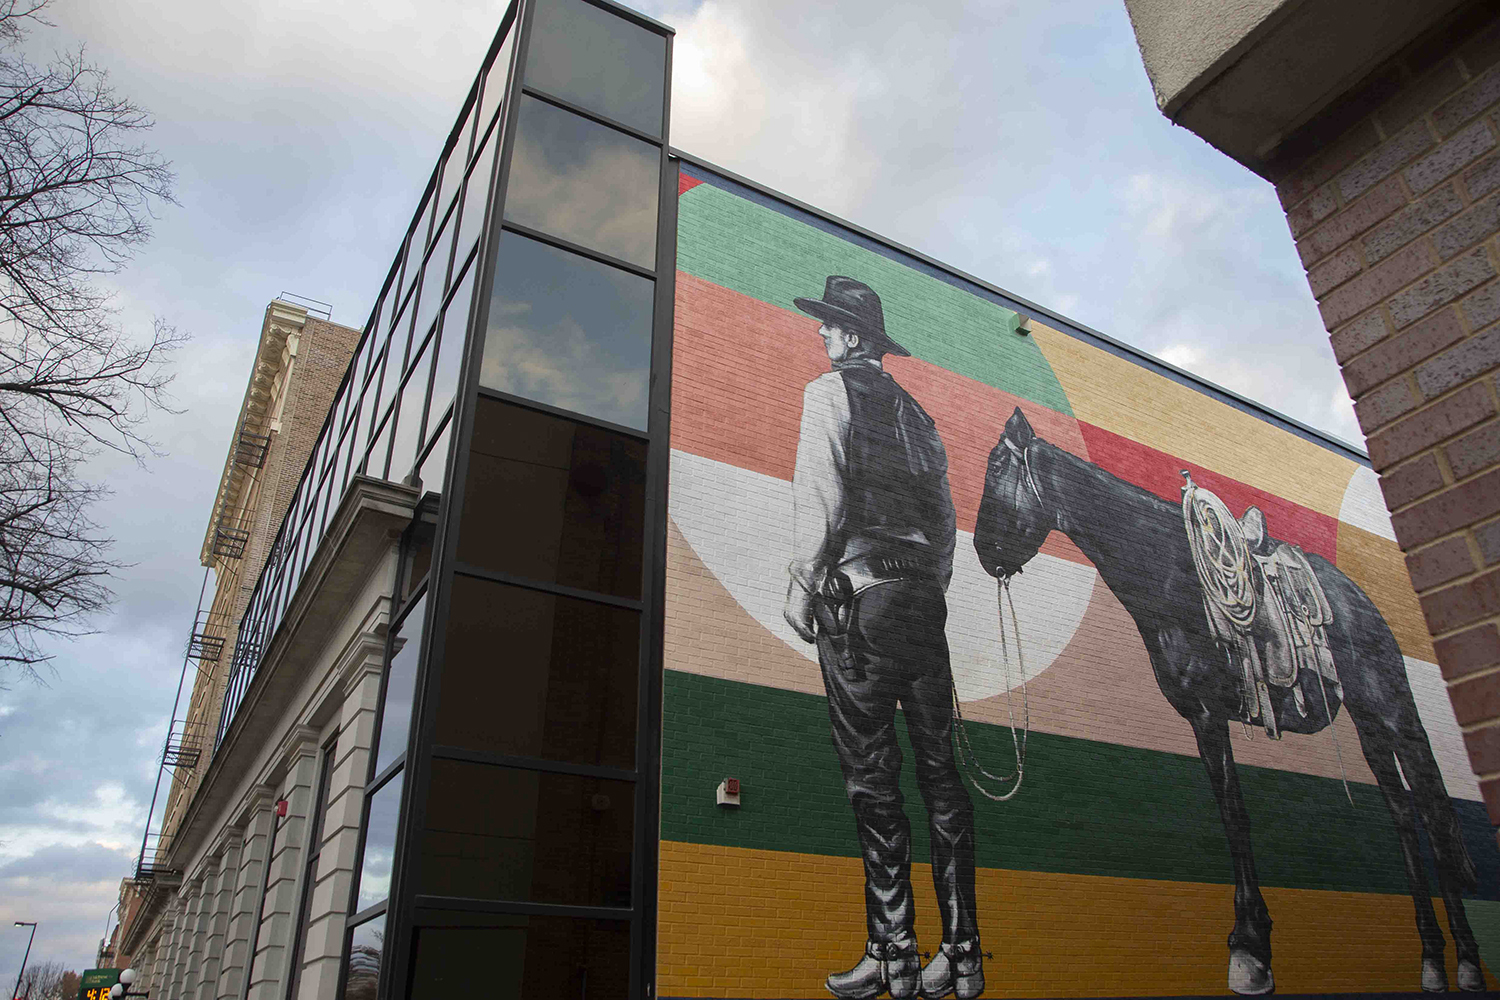 A mural by Thomas Agran depicting Ben S. Summerwill is seen on the wall of the MidwestOne Bank in downtown Iowa City on Tuesday, 19 November, 2019.